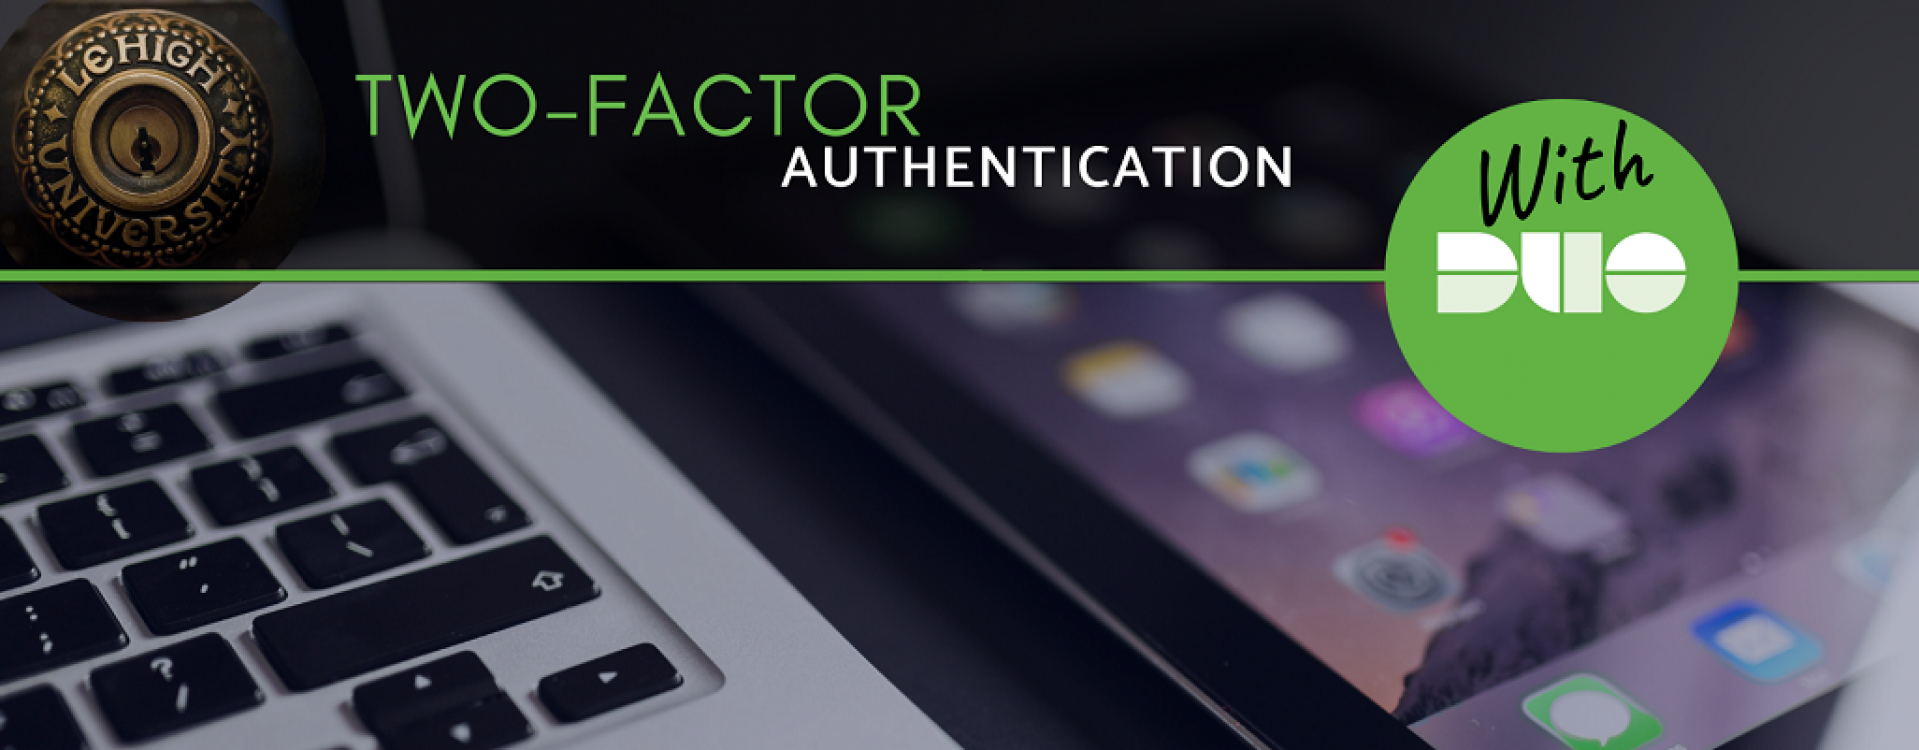 Two-factor authentication campaign poster